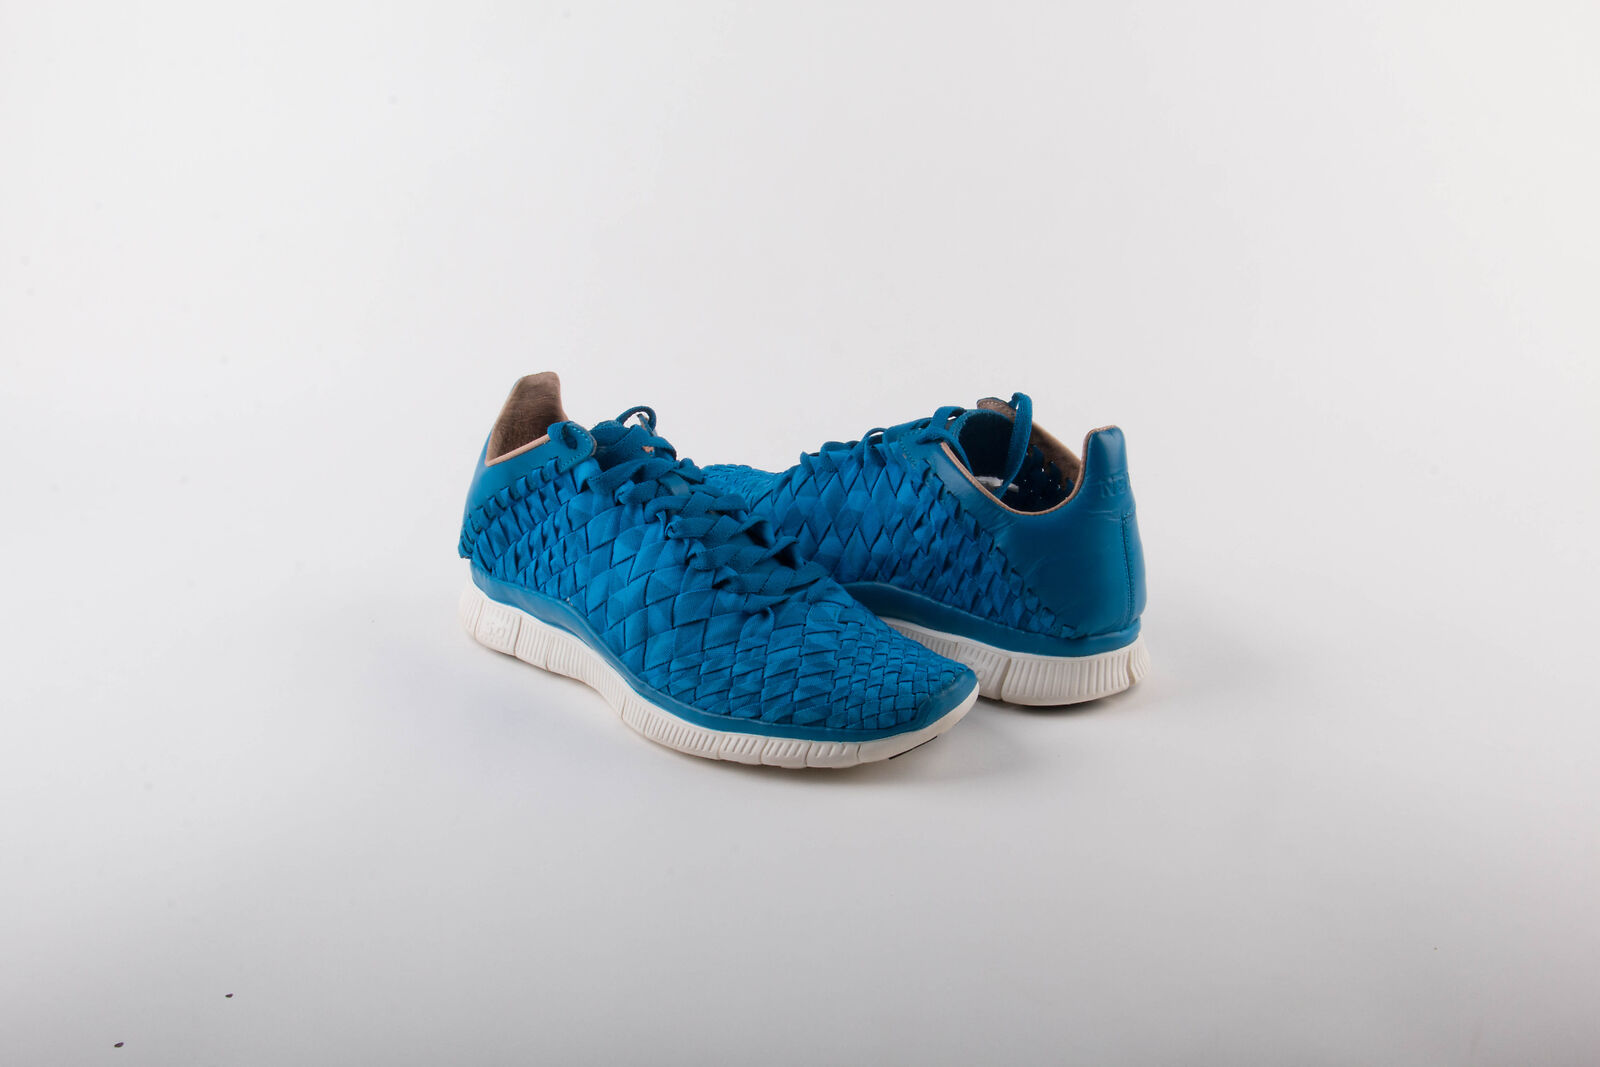 Nike Mens Free Inneva Woven SP Photo Blue 598384-400 Size 8.5 Pre-owned